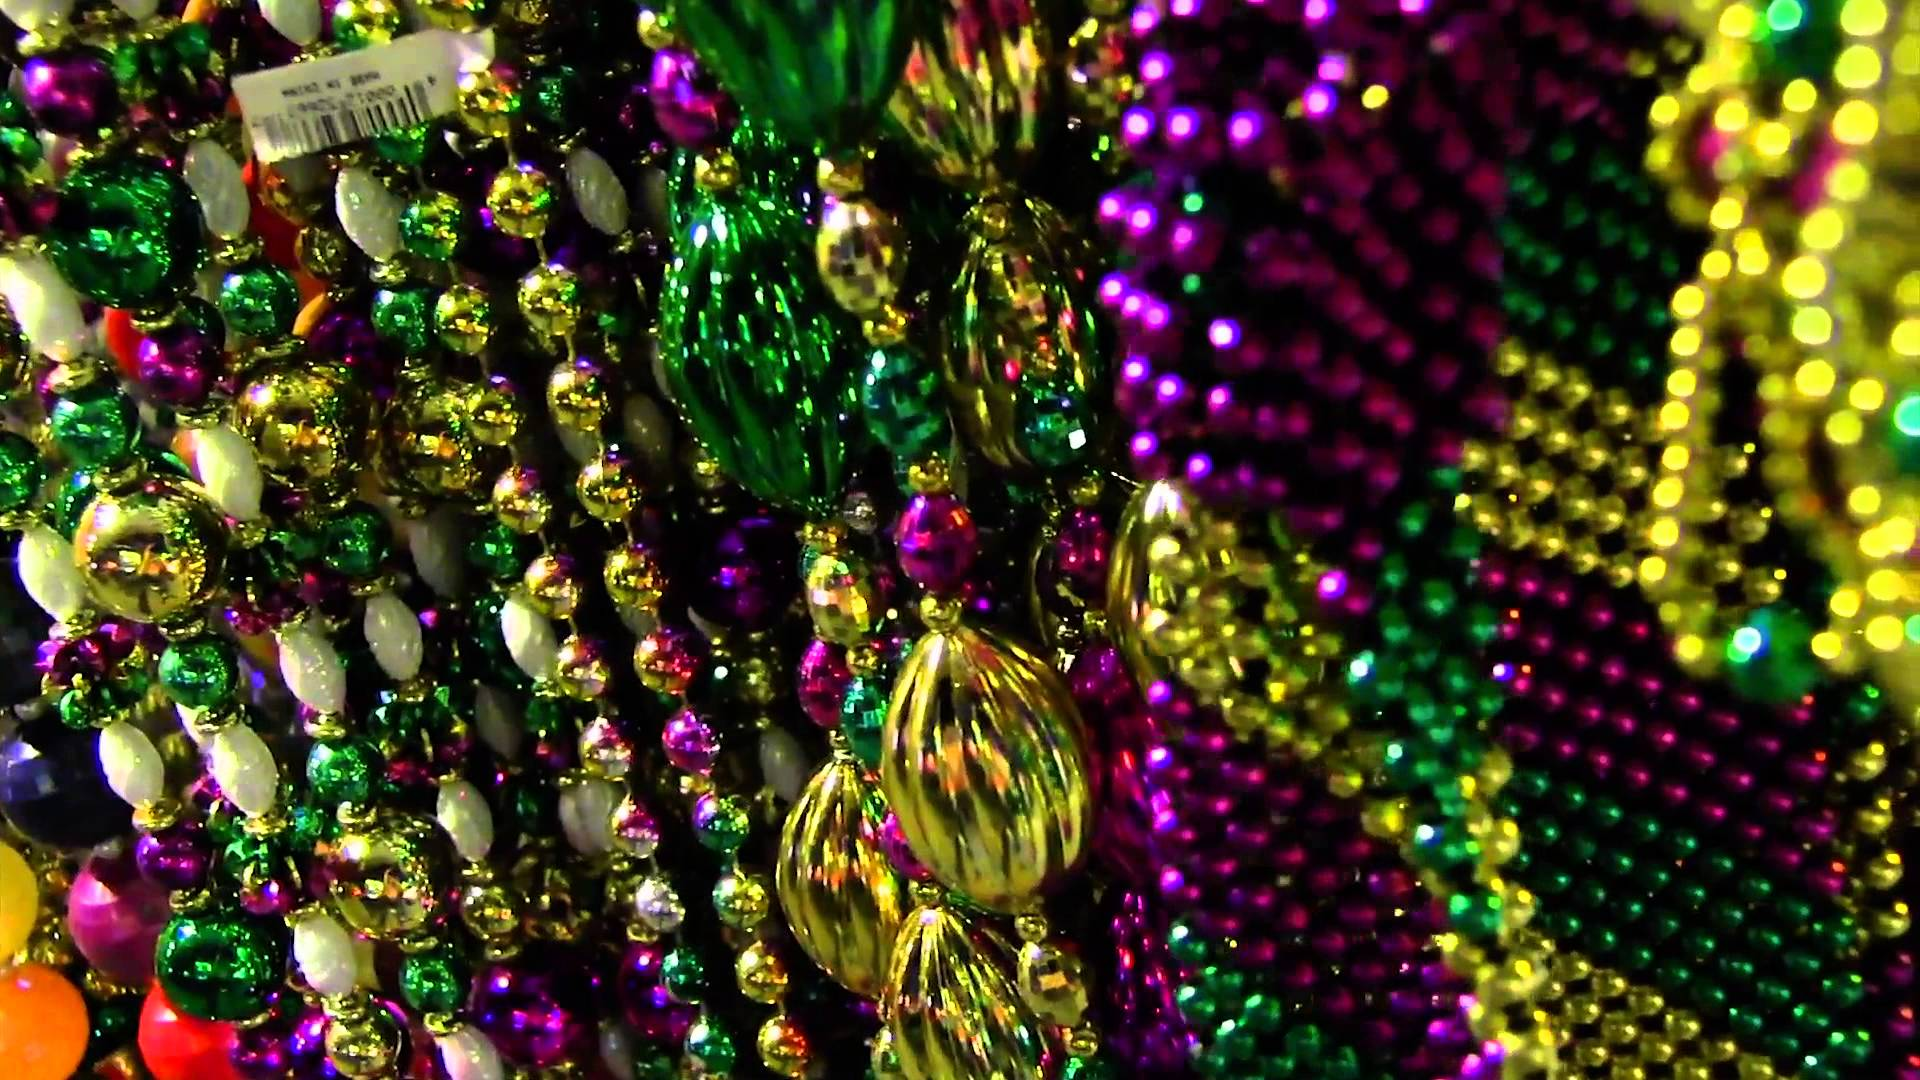 mardi gras wallpapers - wallpaper cave